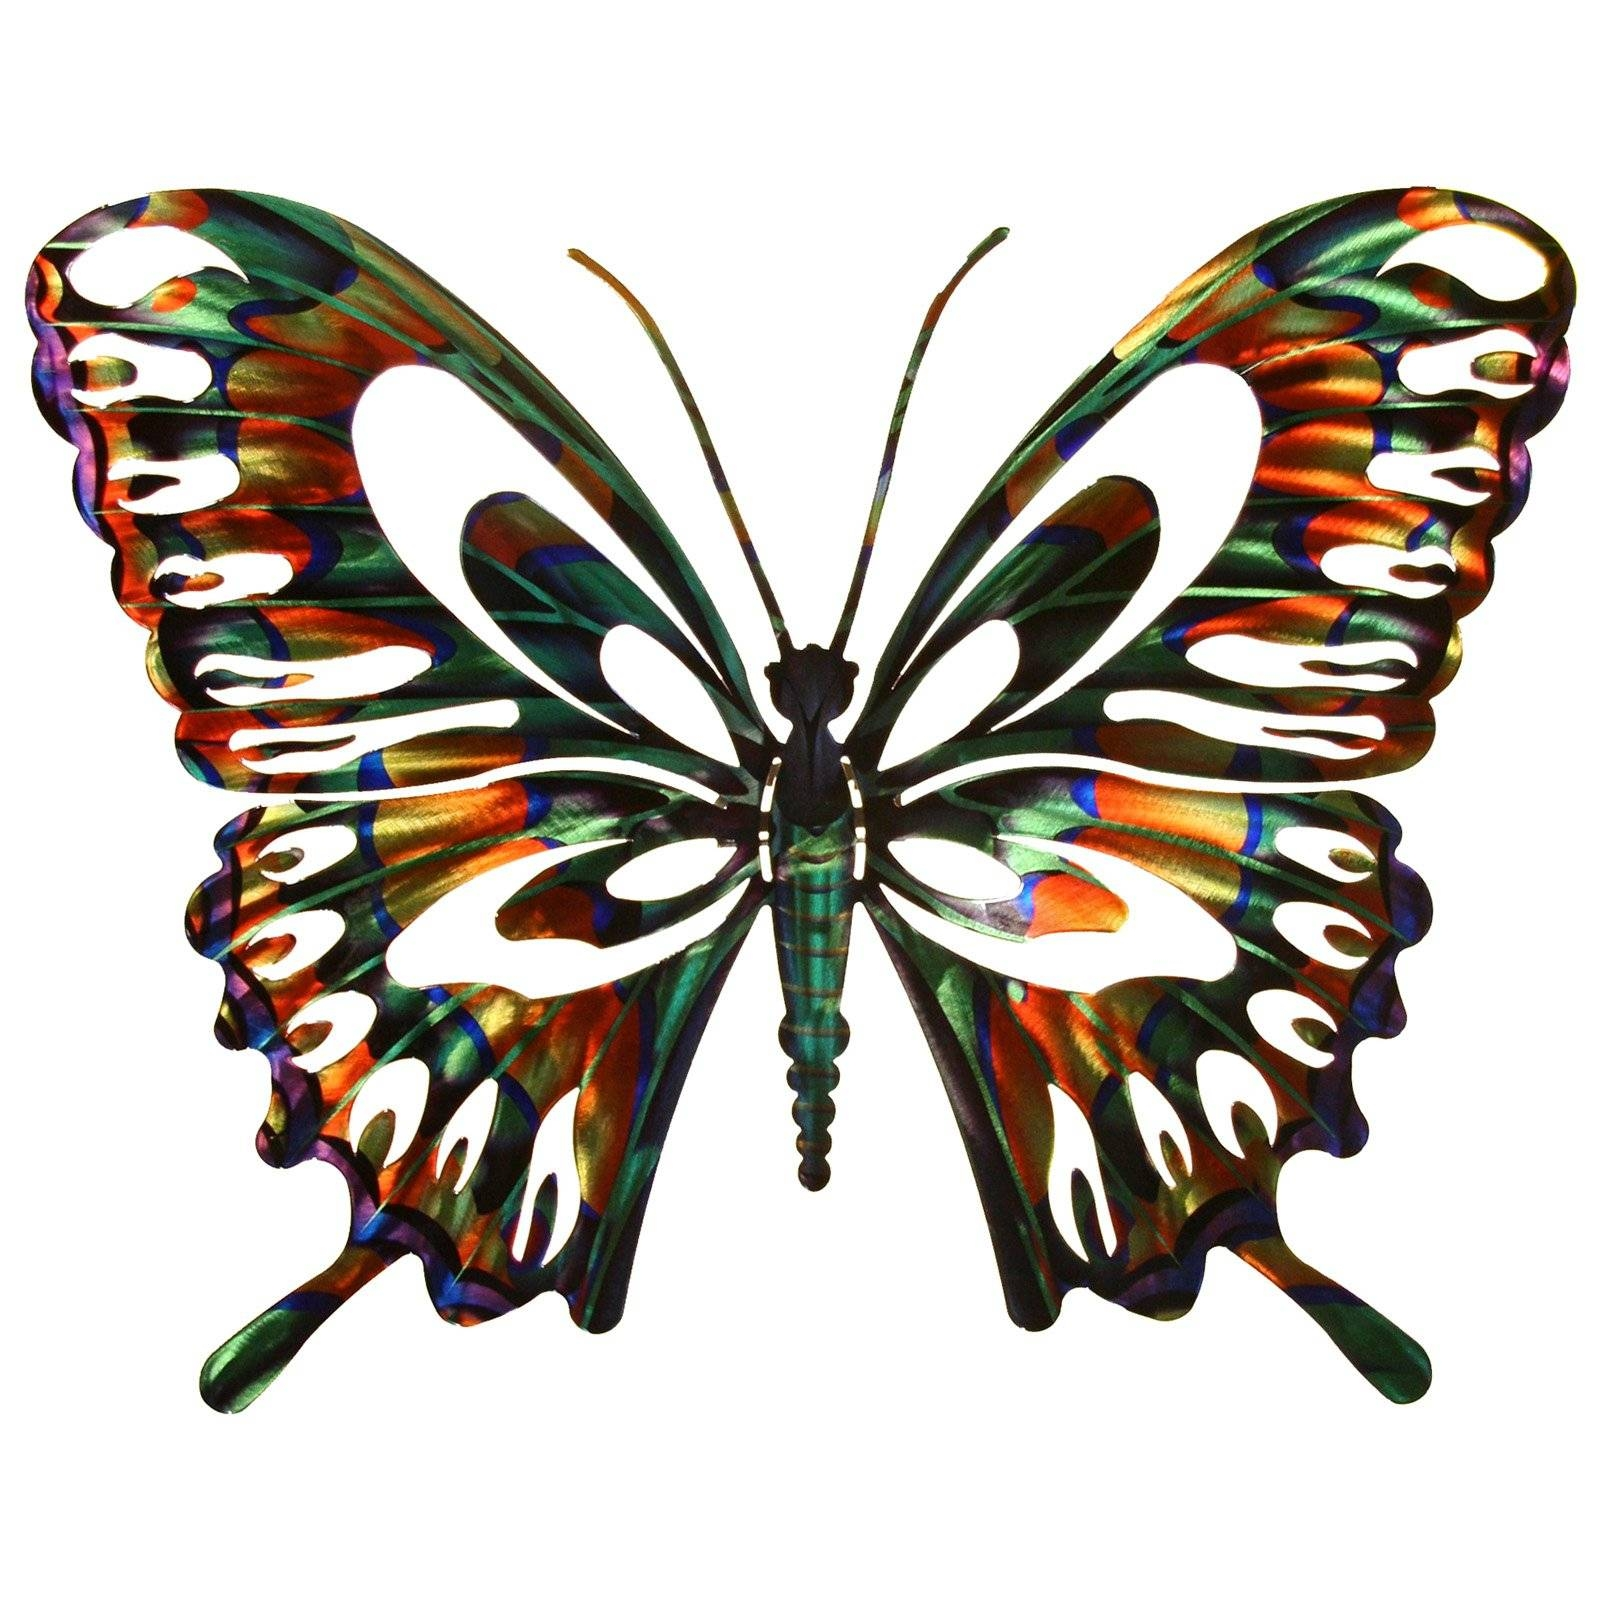 3D Butterfly Metal Outdoor Wall Art | Hayneedle With Most Recently Released Large Metal Butterfly Wall Art (View 1 of 25)